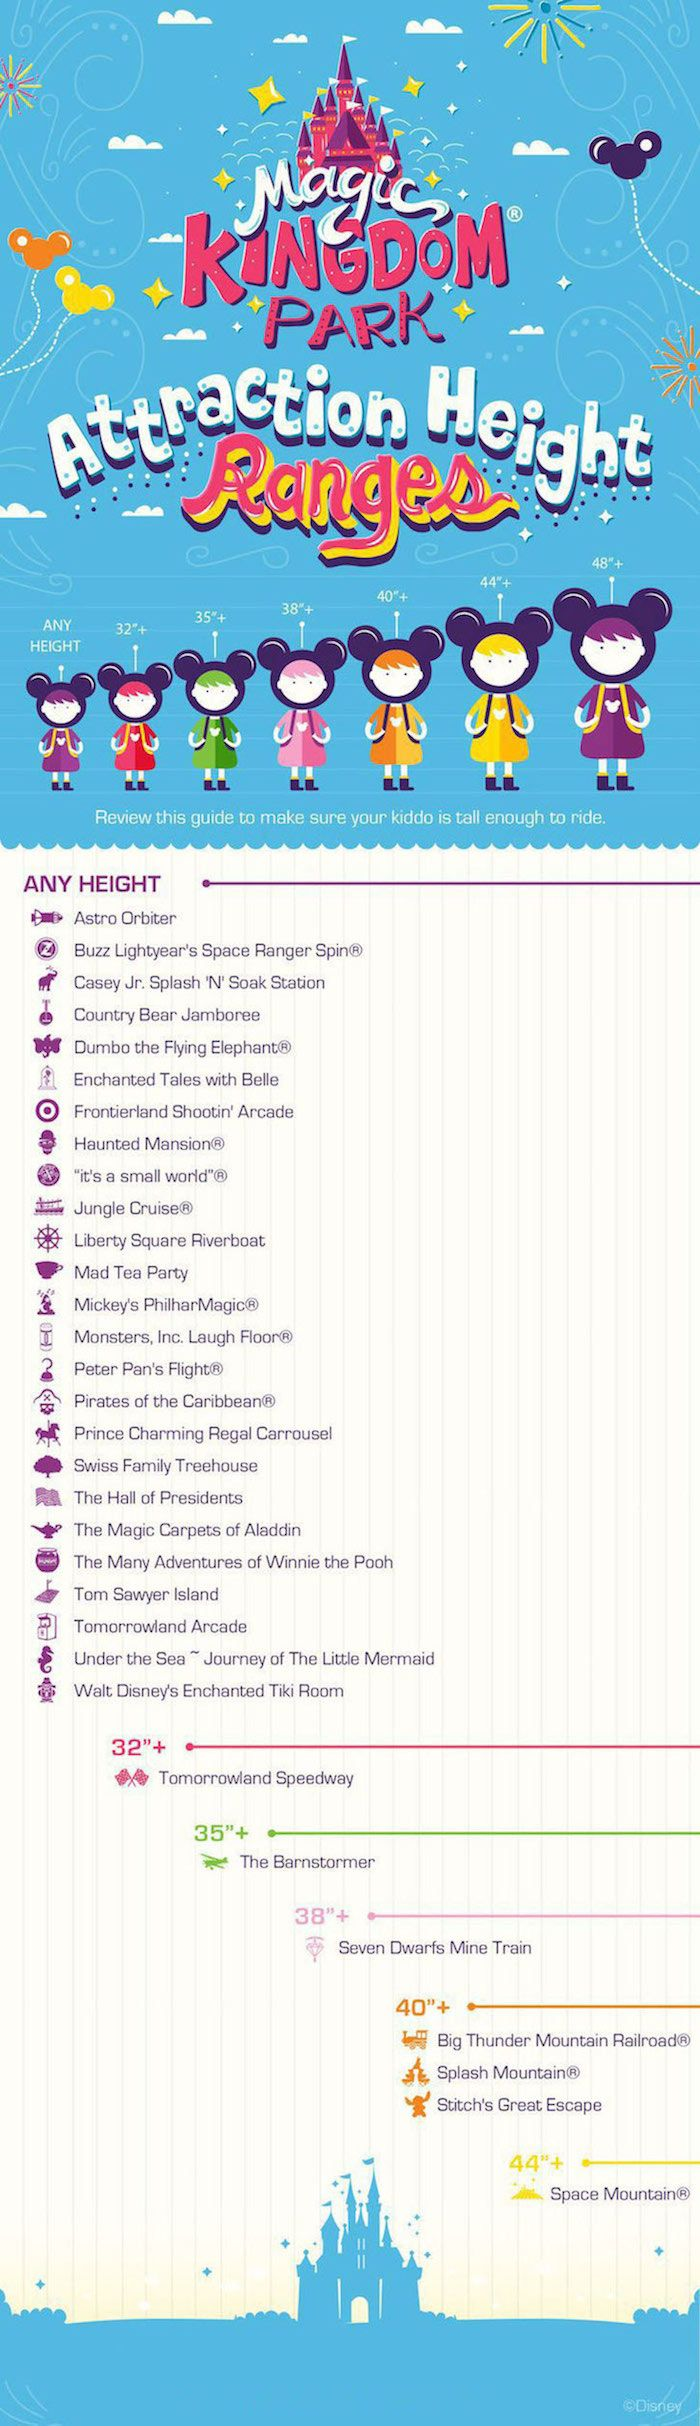 Disney World Height Chart - Travel with the Magic - Amy@TravelWithTheMagic.com